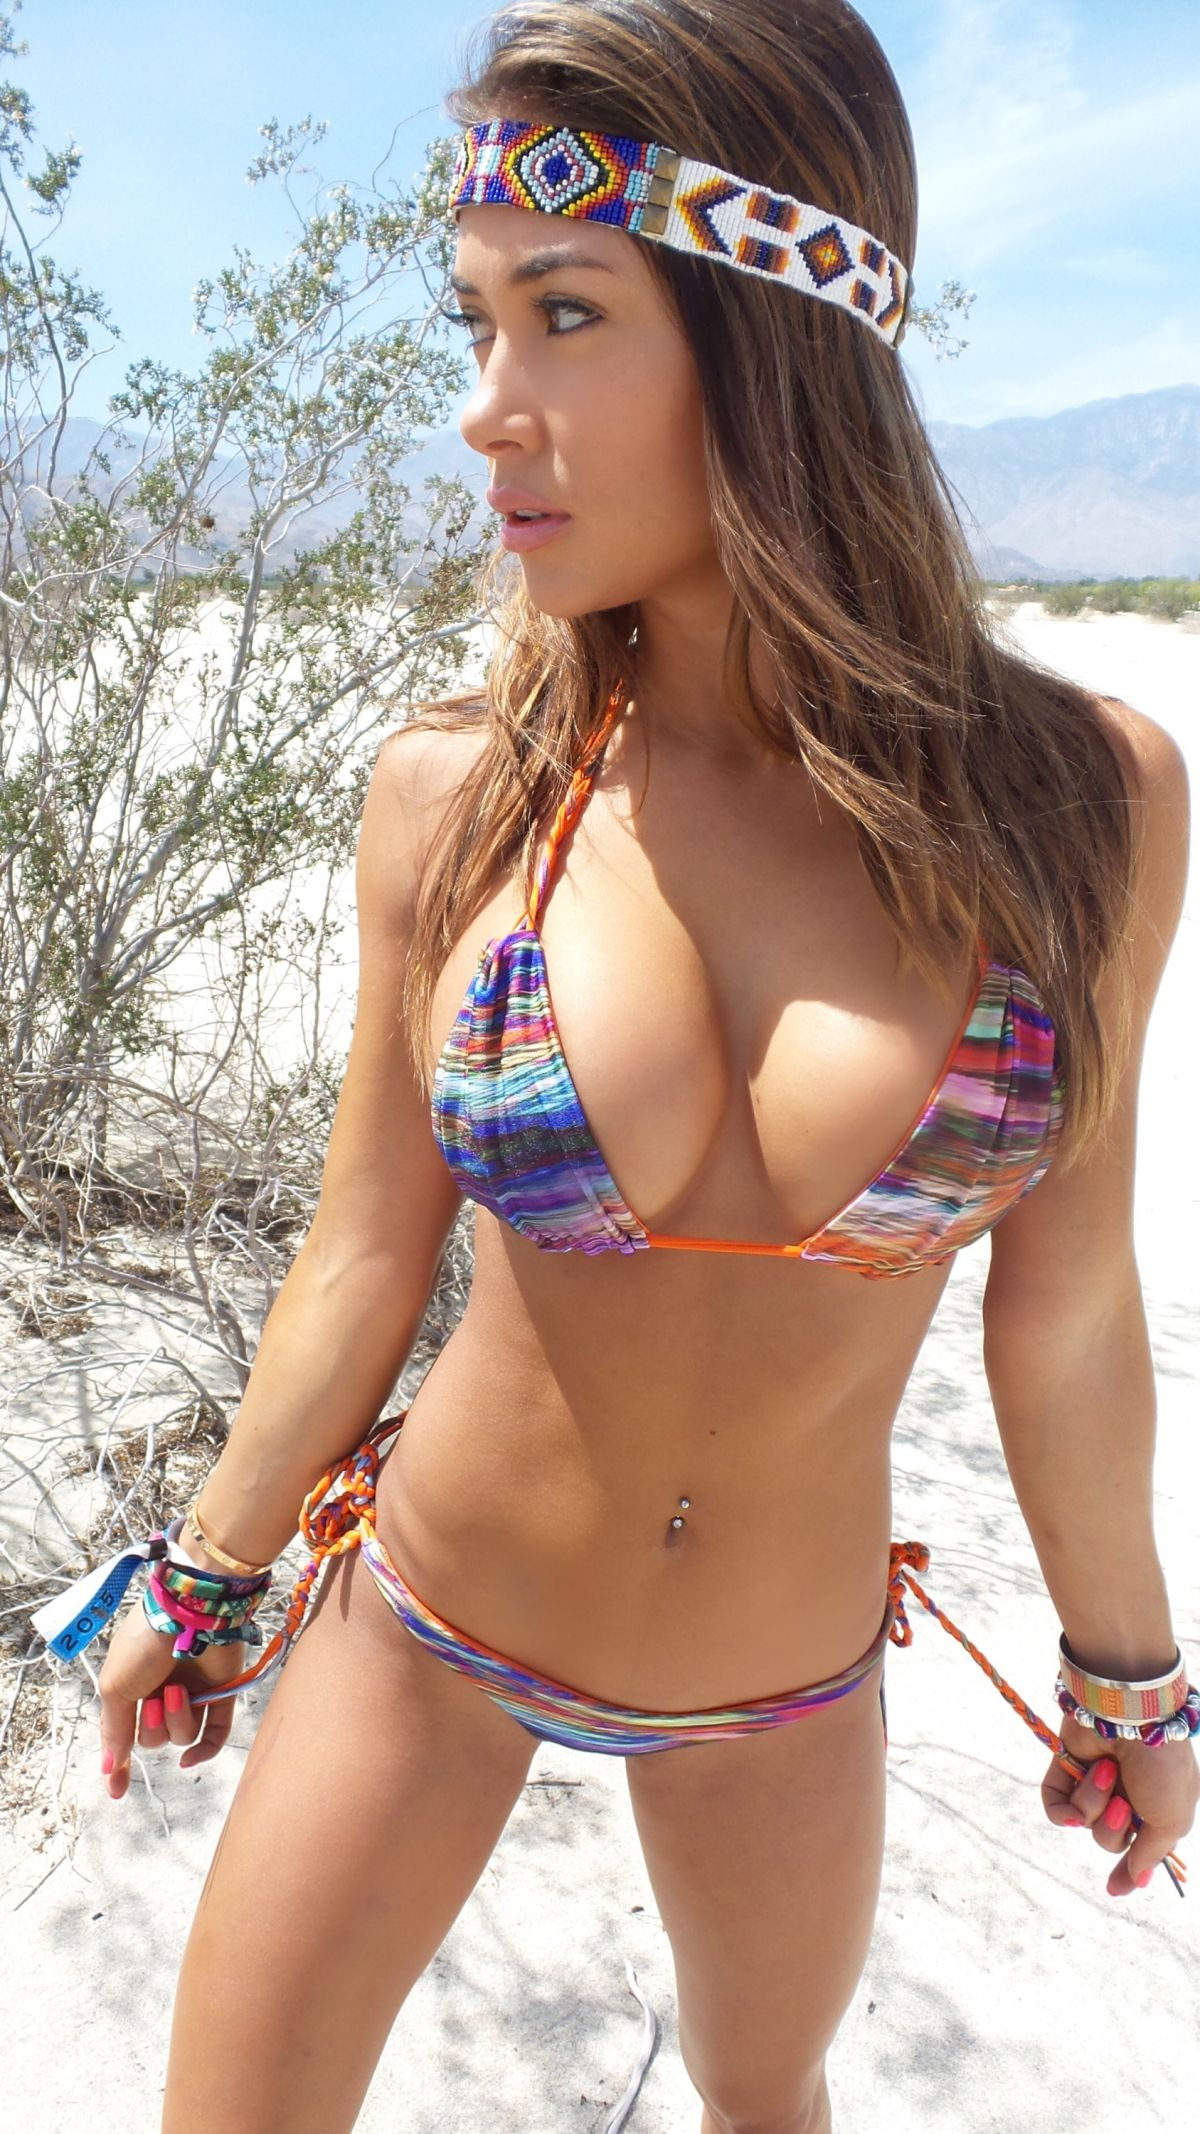 ARIANNY CELESTE - Solkissed Swimwear 2015 Photoshoot ...